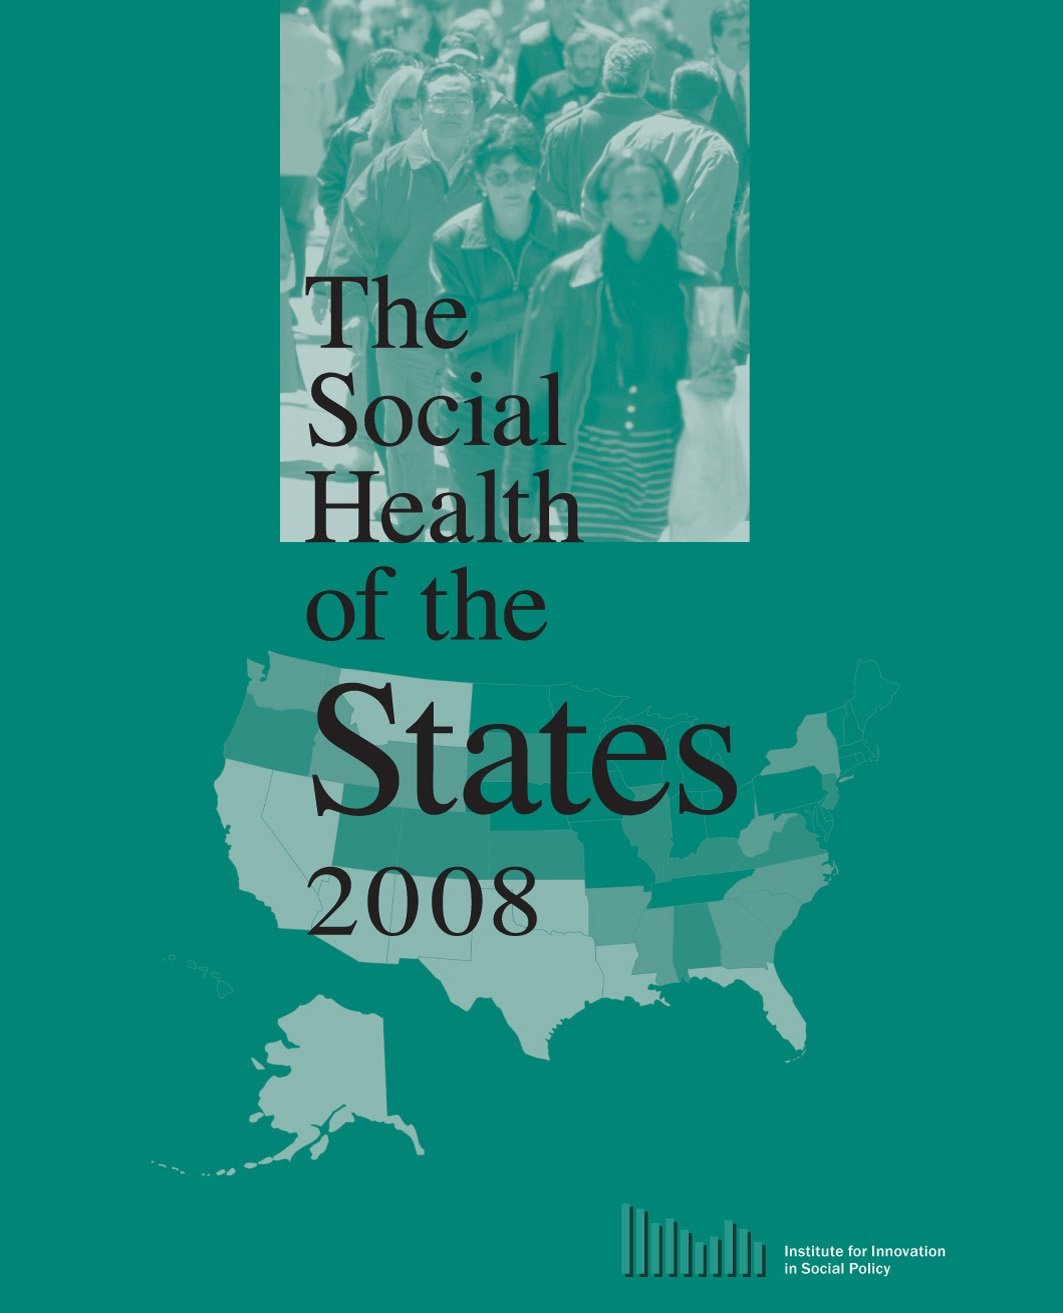 The Social Health of States 2008